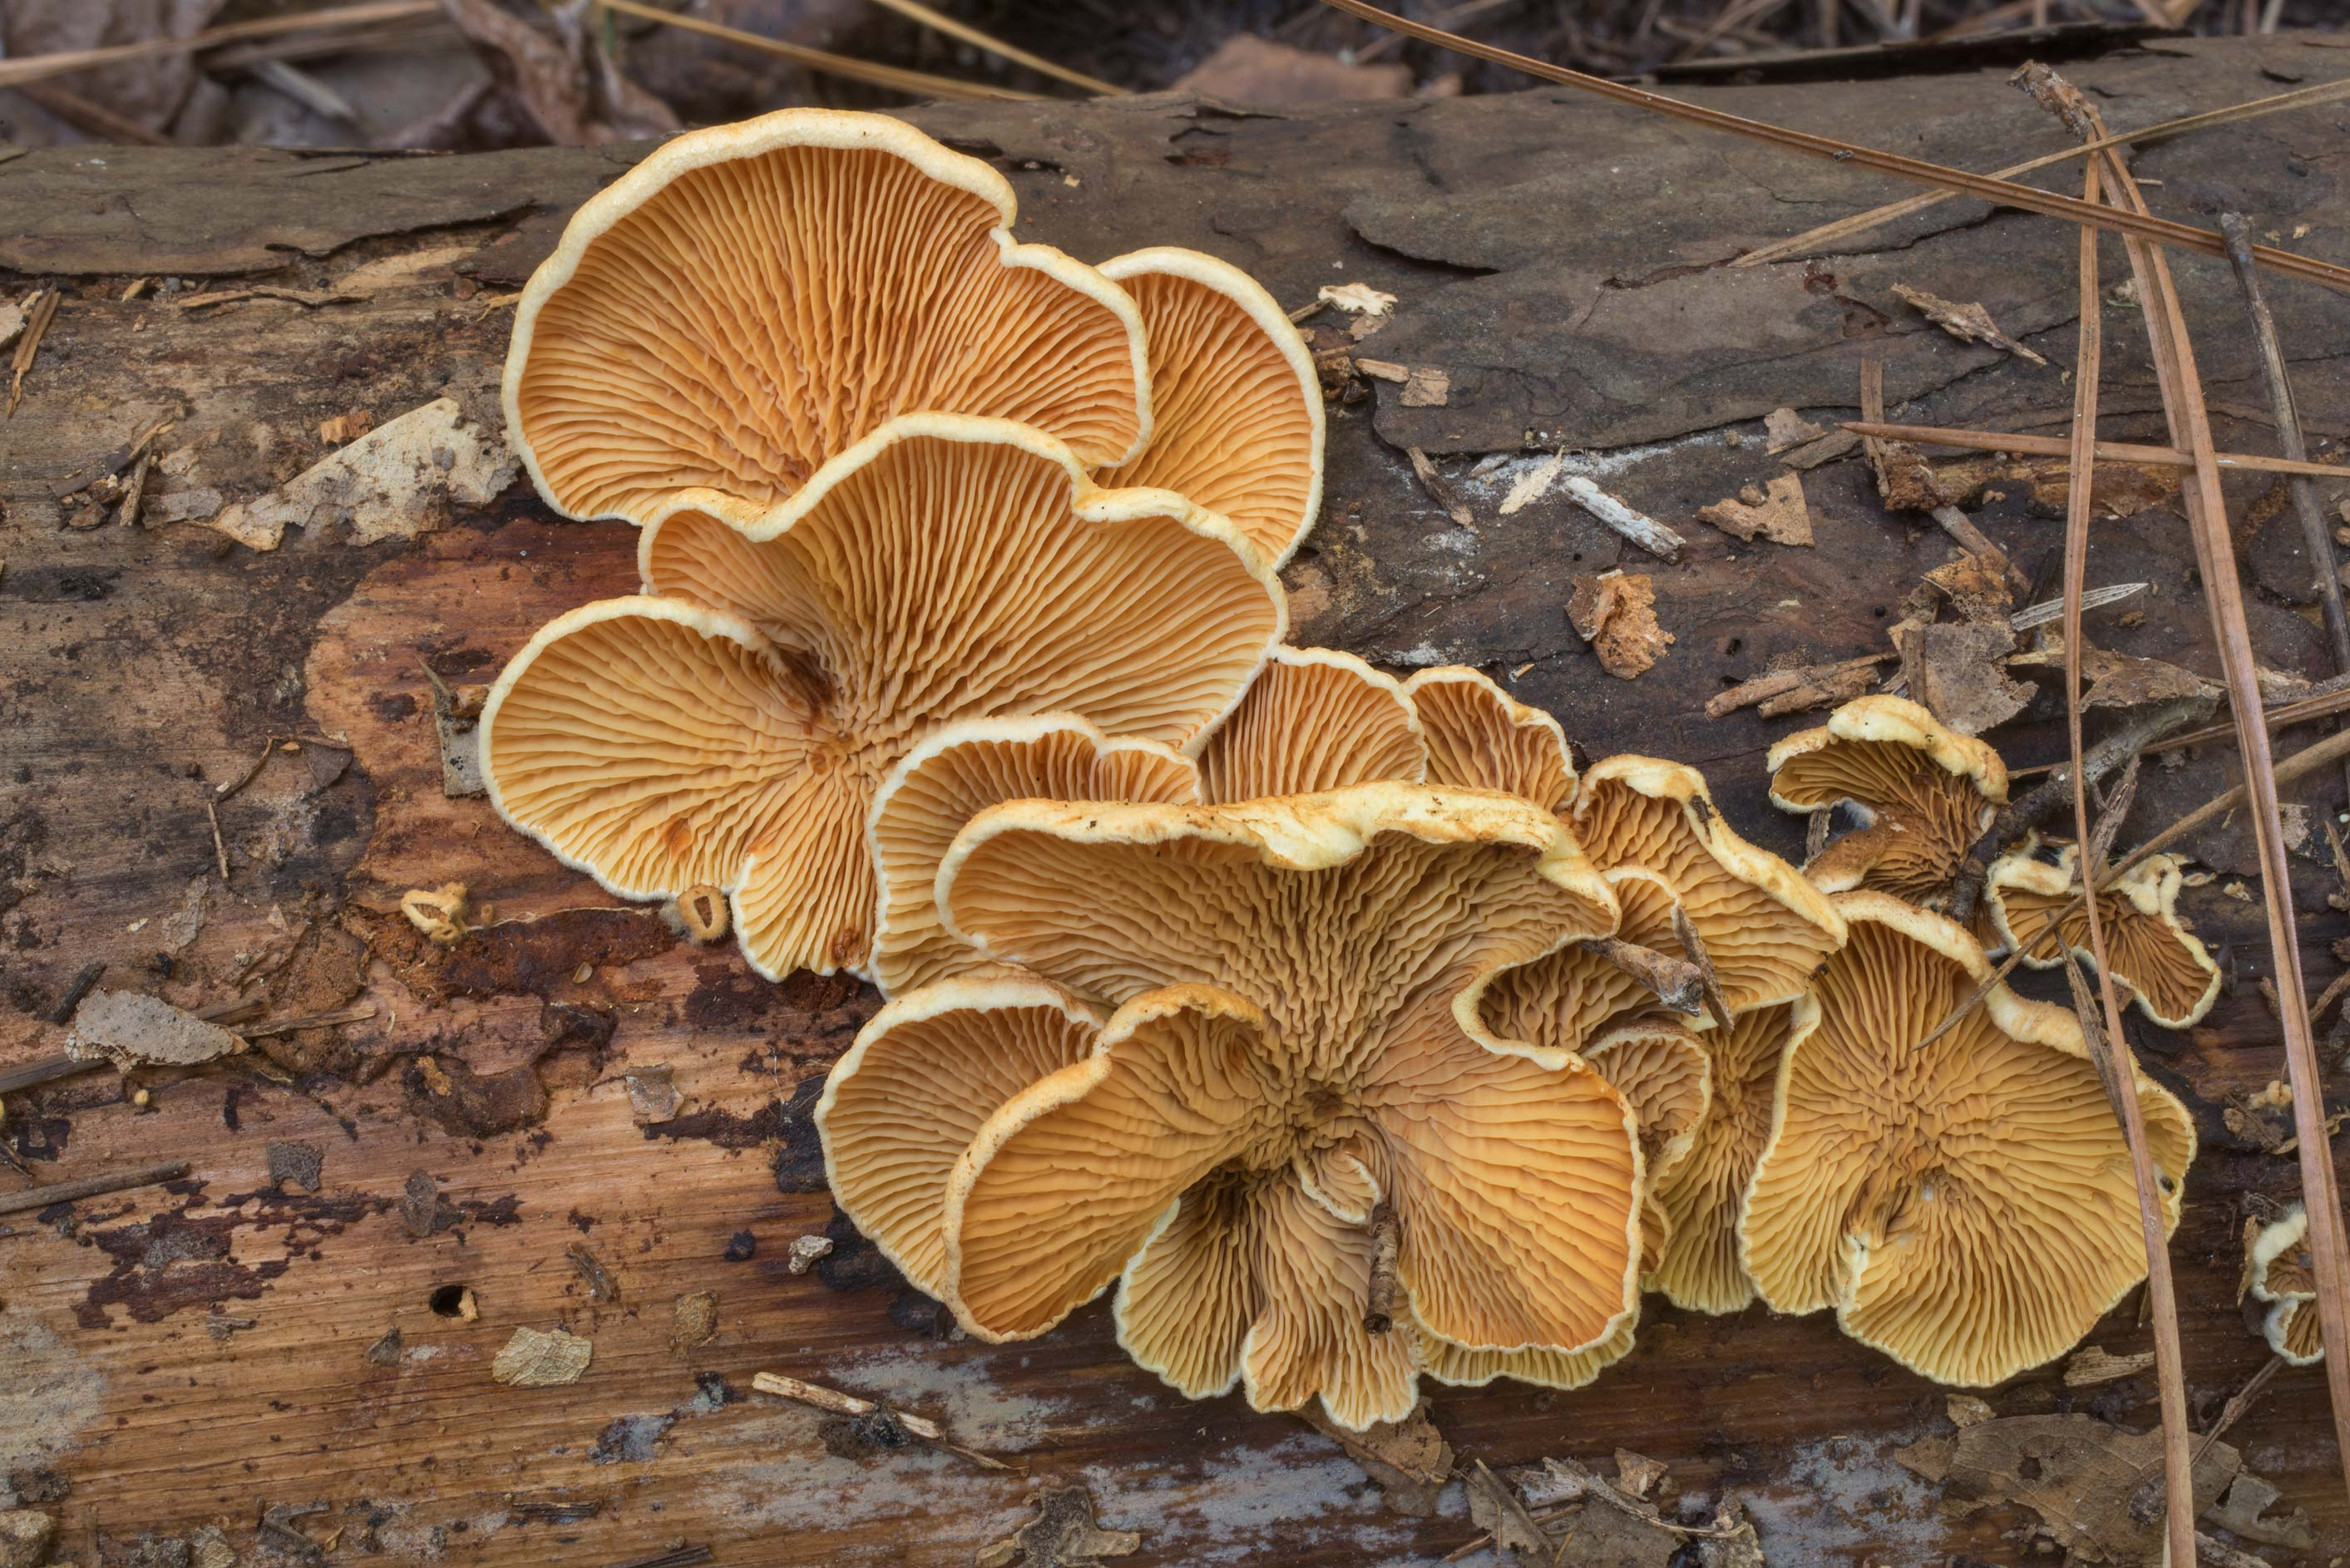 Oyster rollrim mushrooms (Tapinella panuoides) on...National Forest. Cleveland, Texas